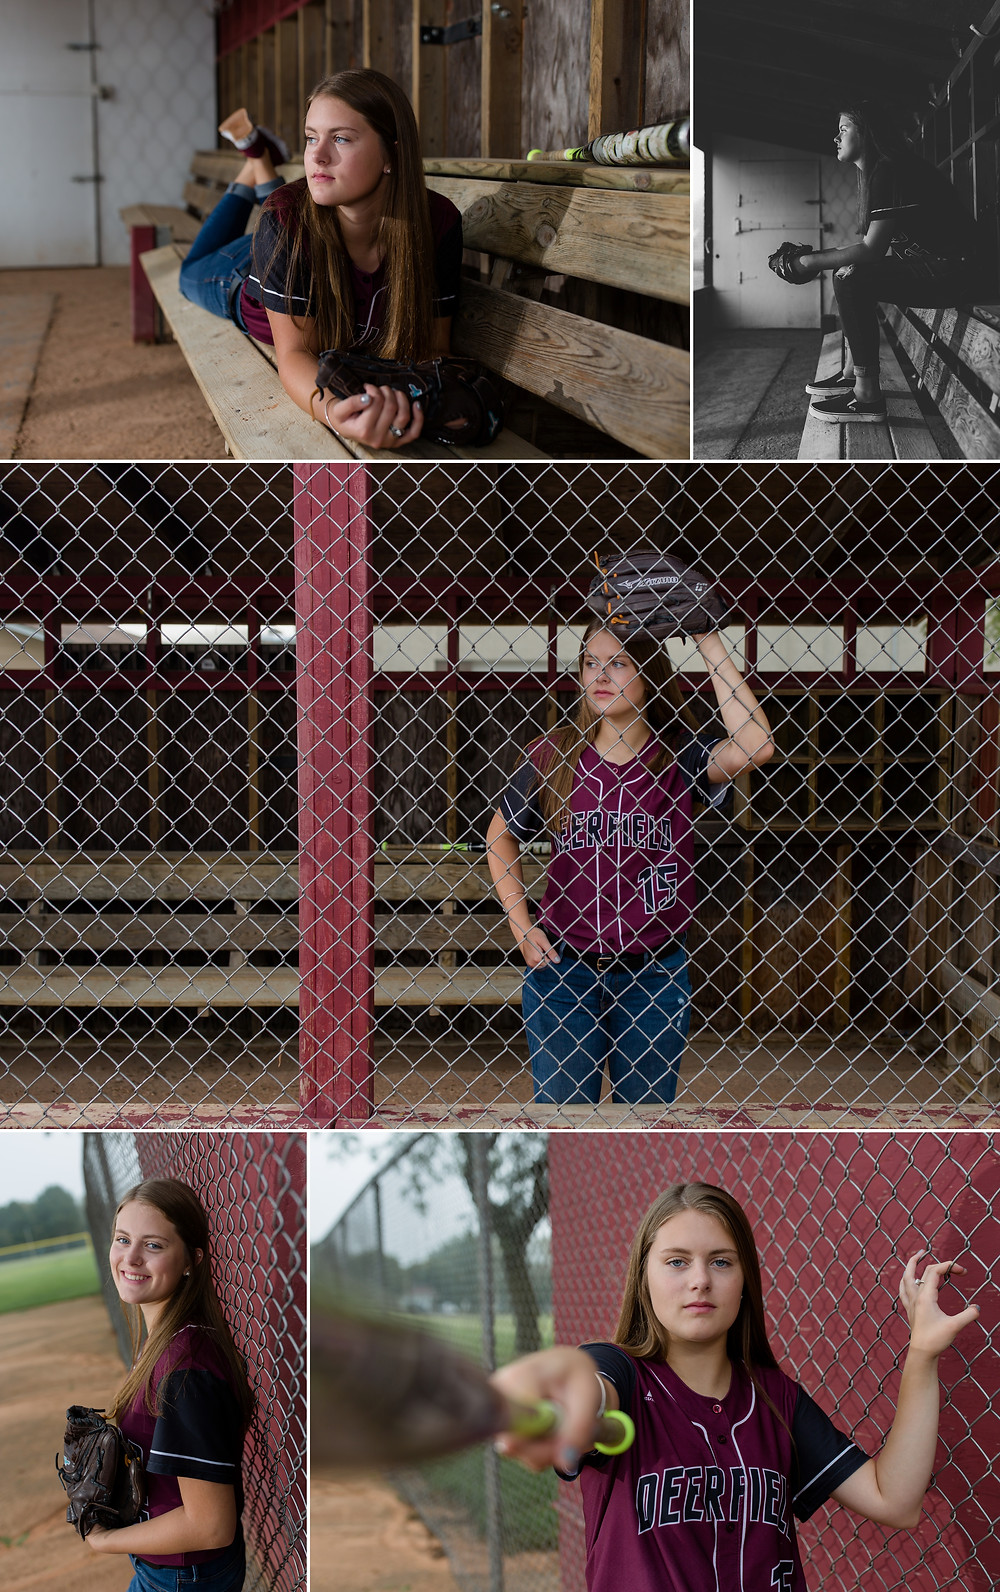 High school senior pictures of Abby from Deerfield Wisconsin.